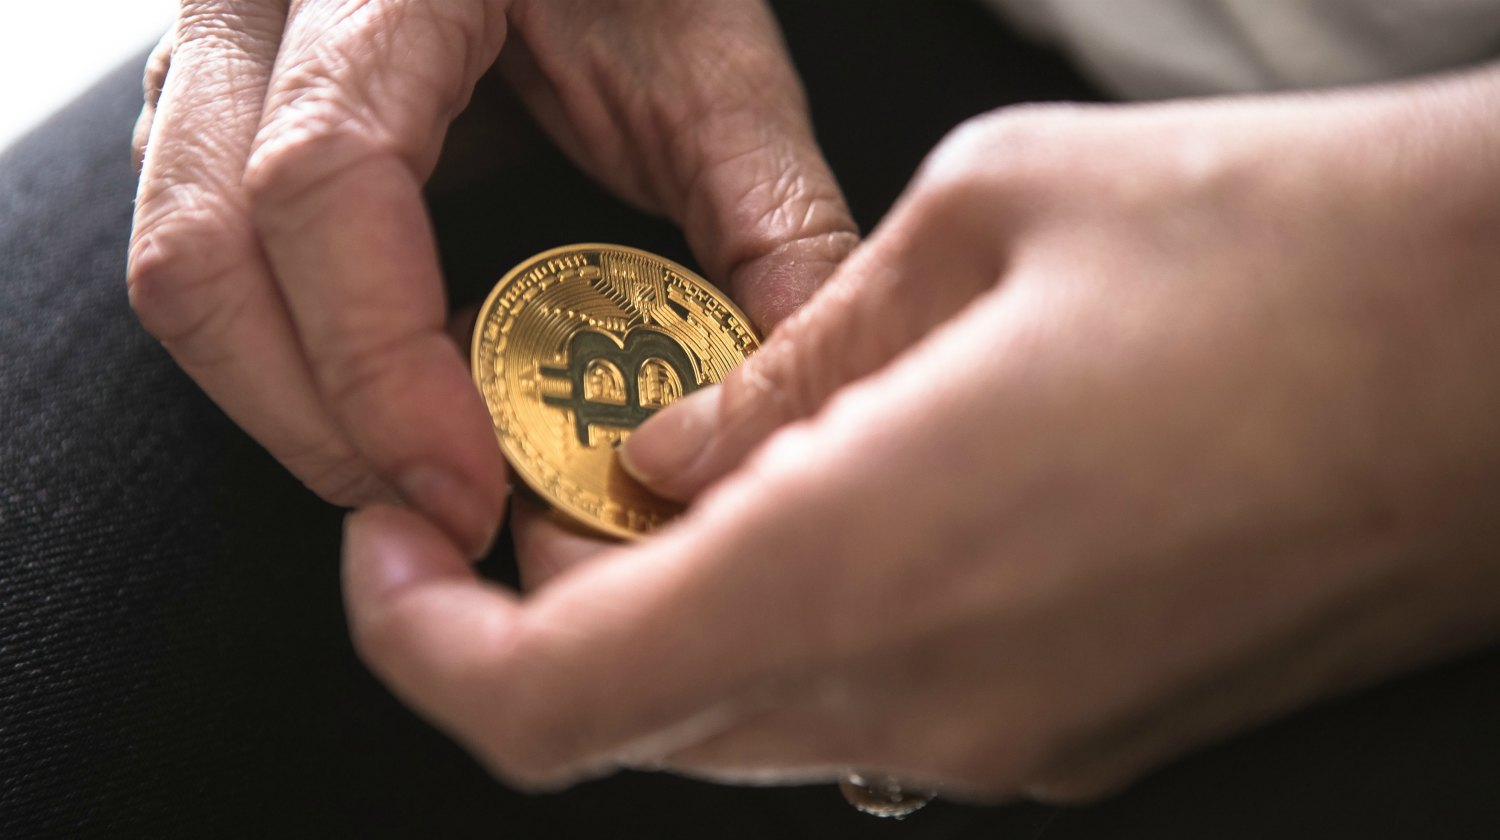 person holding round gold-colored Bitcoin | Investing in Cryptocurrency | What You Should Ask | investing in cryptocurrency | earn bitcoins | Featured